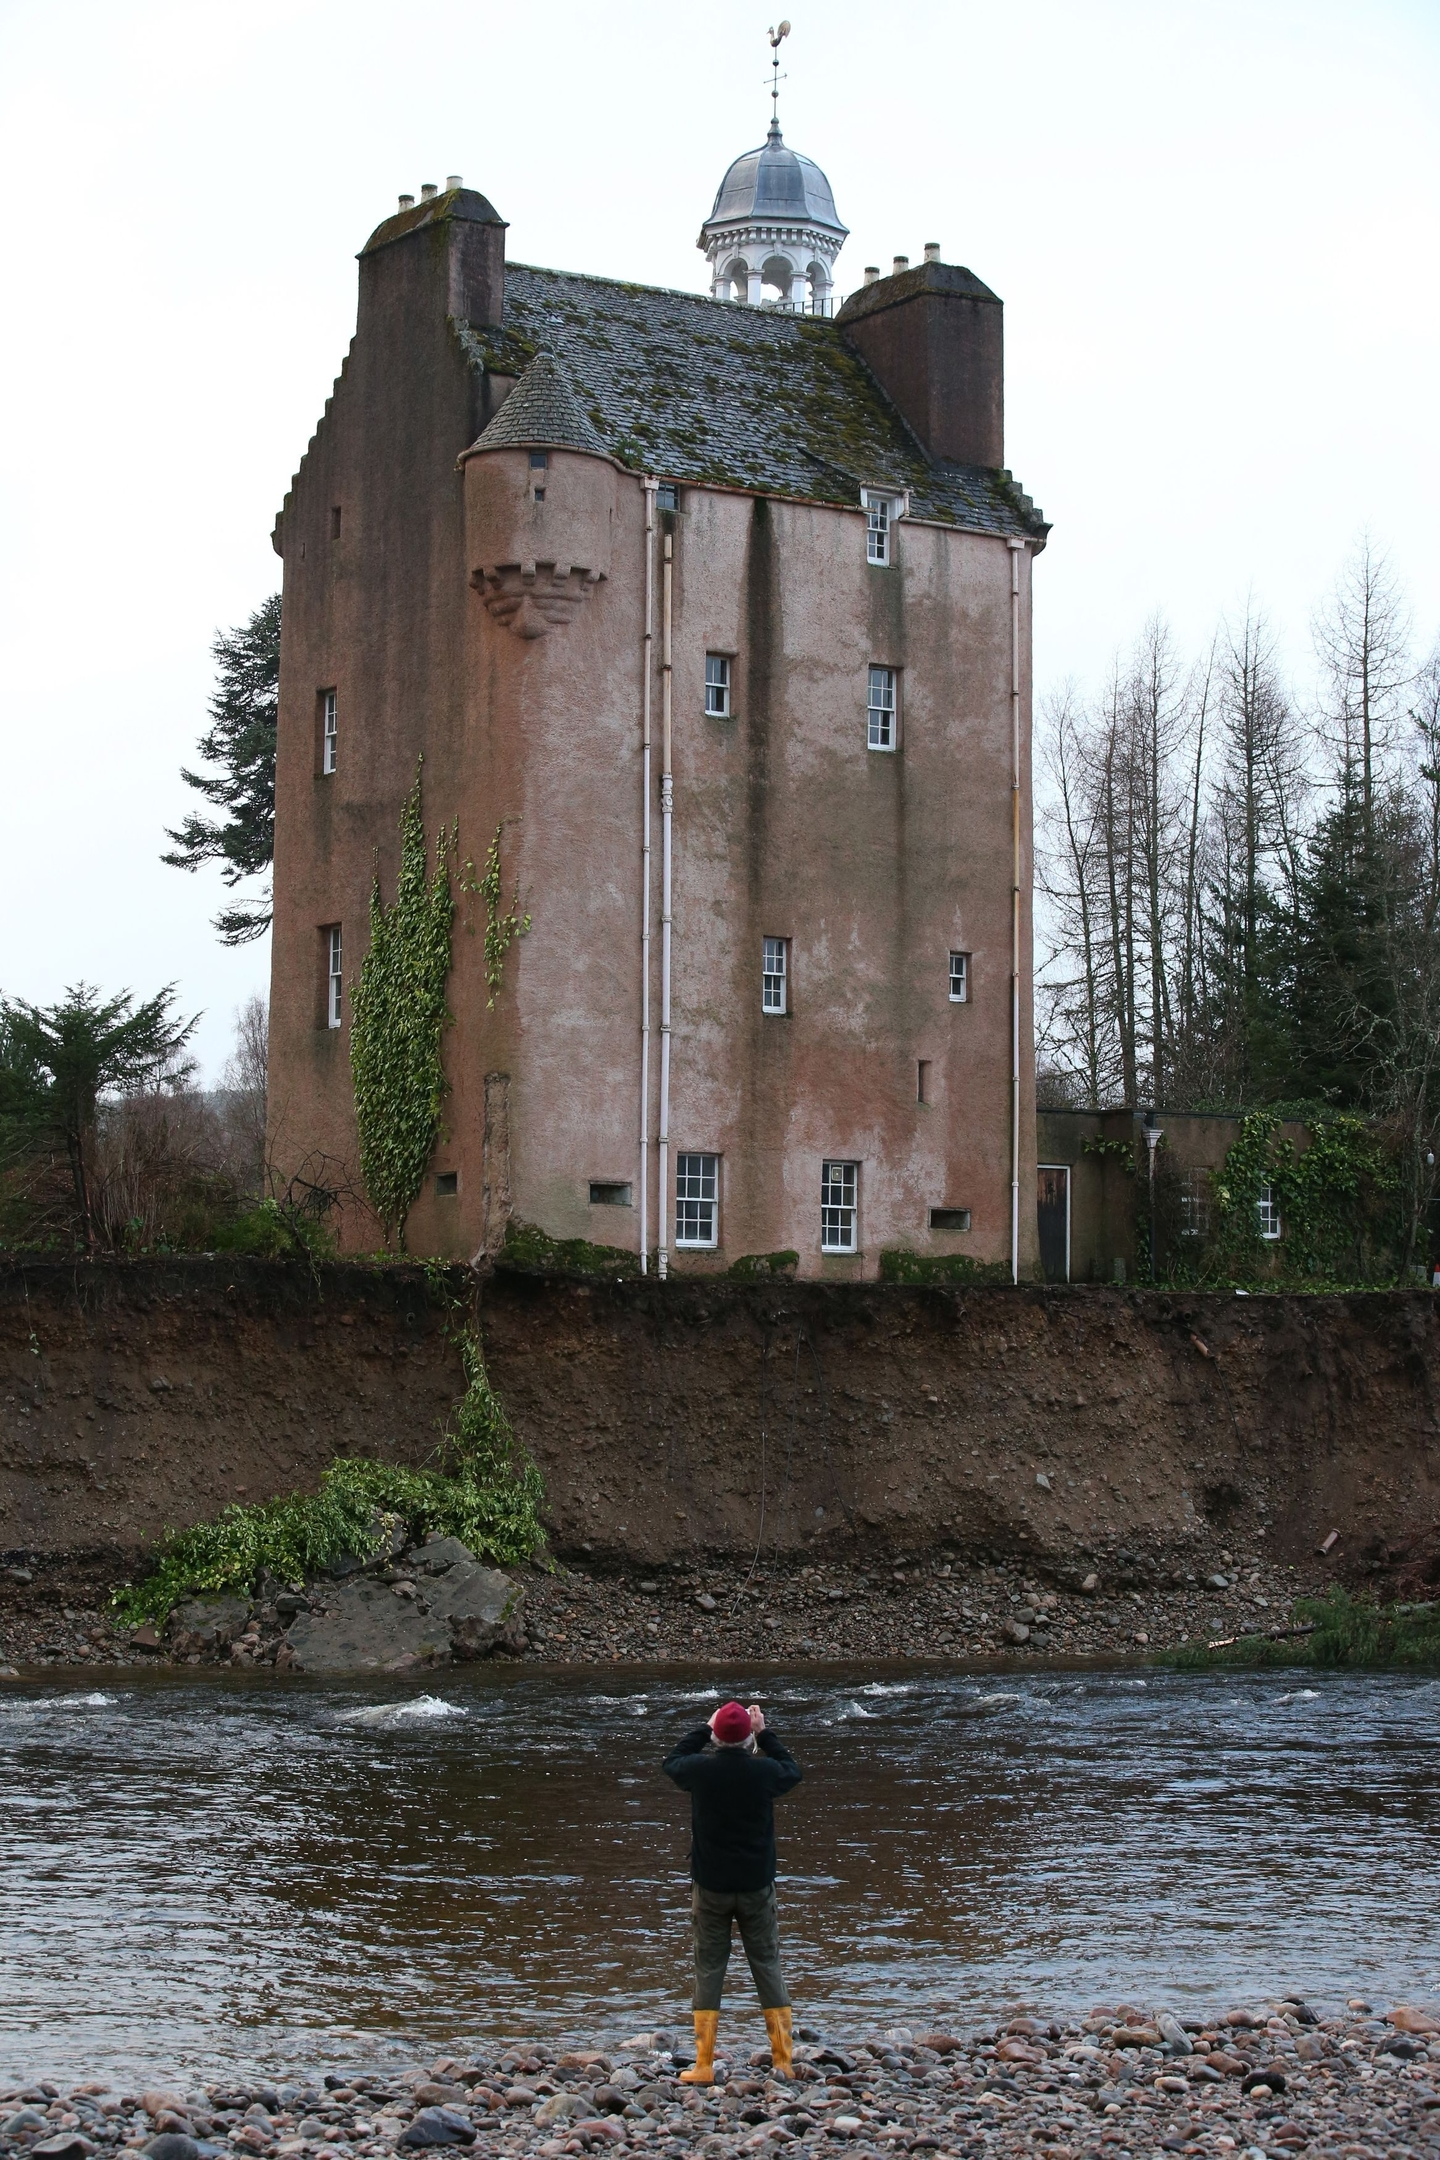 A man takes a picture of Abergeldie Castle on the River Dee after storms last week came close to washing it away. PRESS ASSOCIATION Photo. Picture date: Wednesday January 6, 2016. Photo credit should read: Andrew Milligan/PA Wire